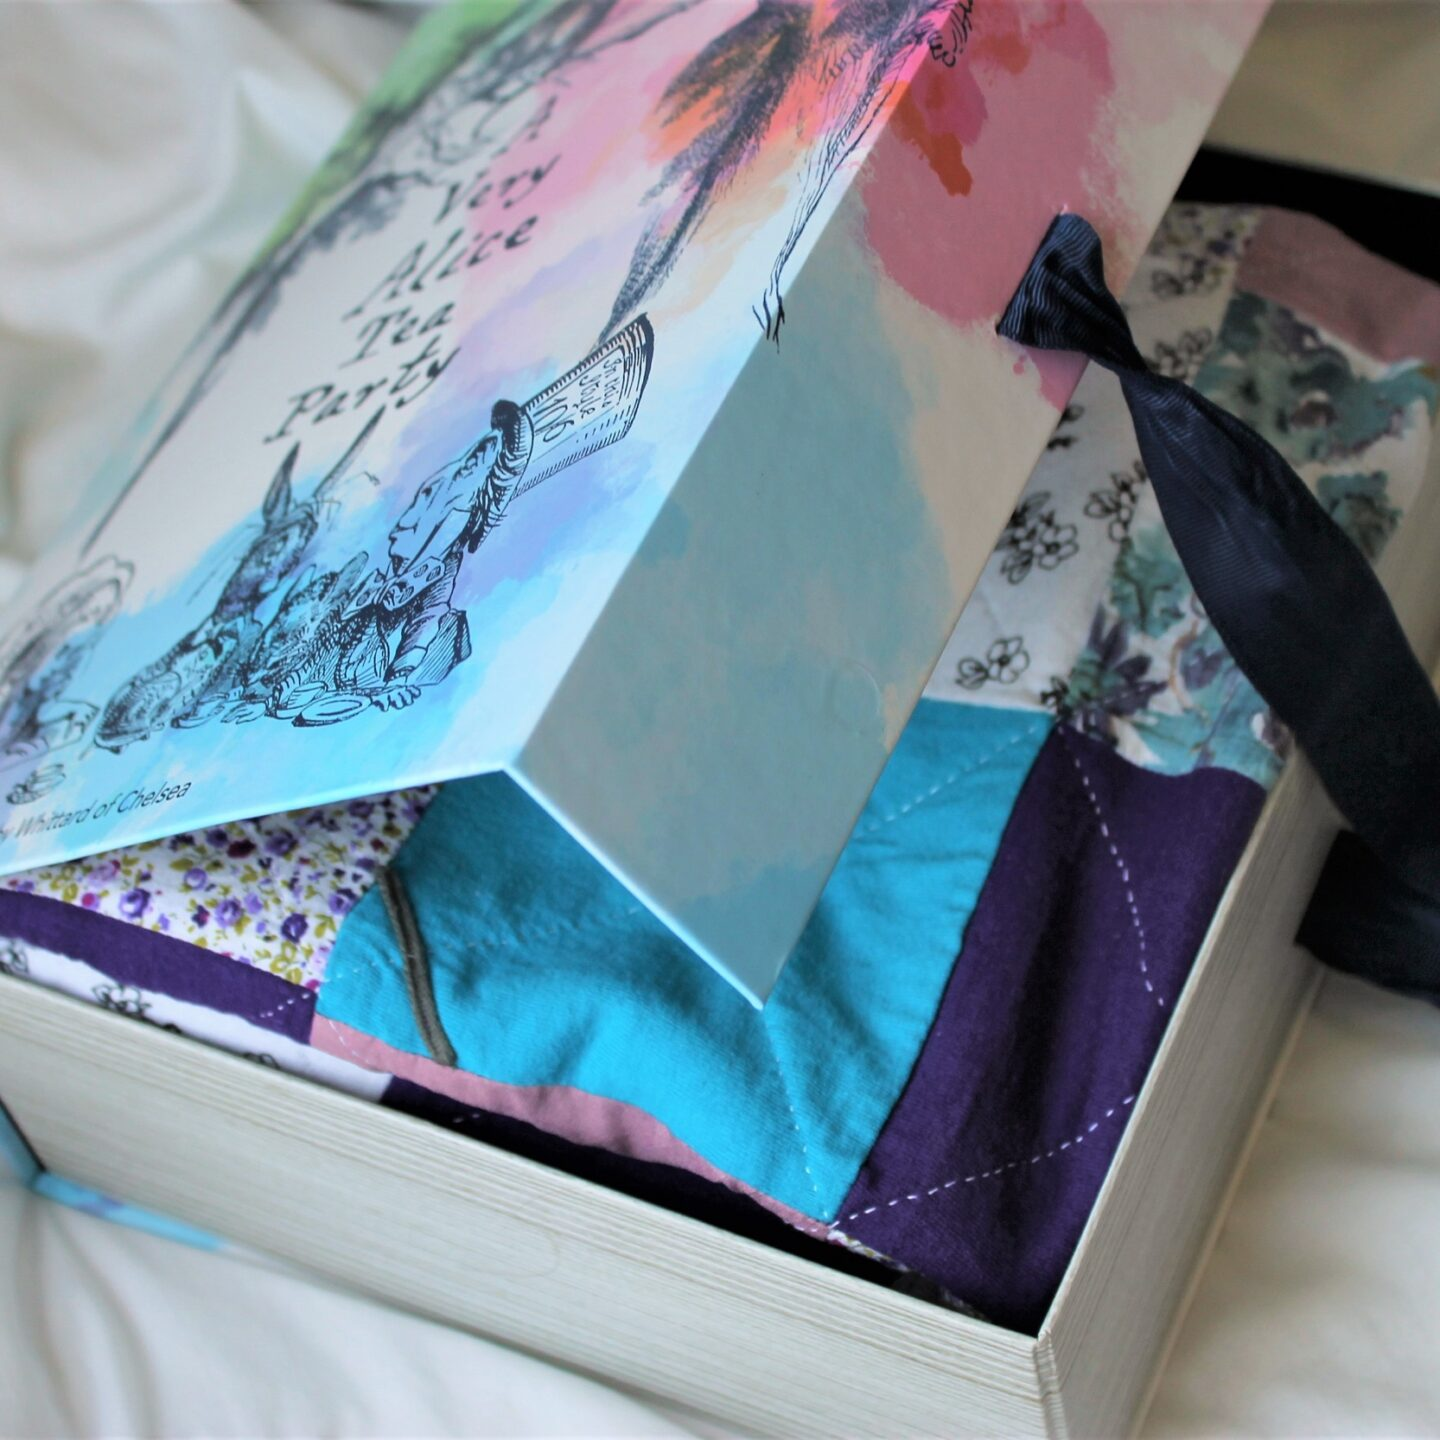 Creating an Anxiety Relief Box